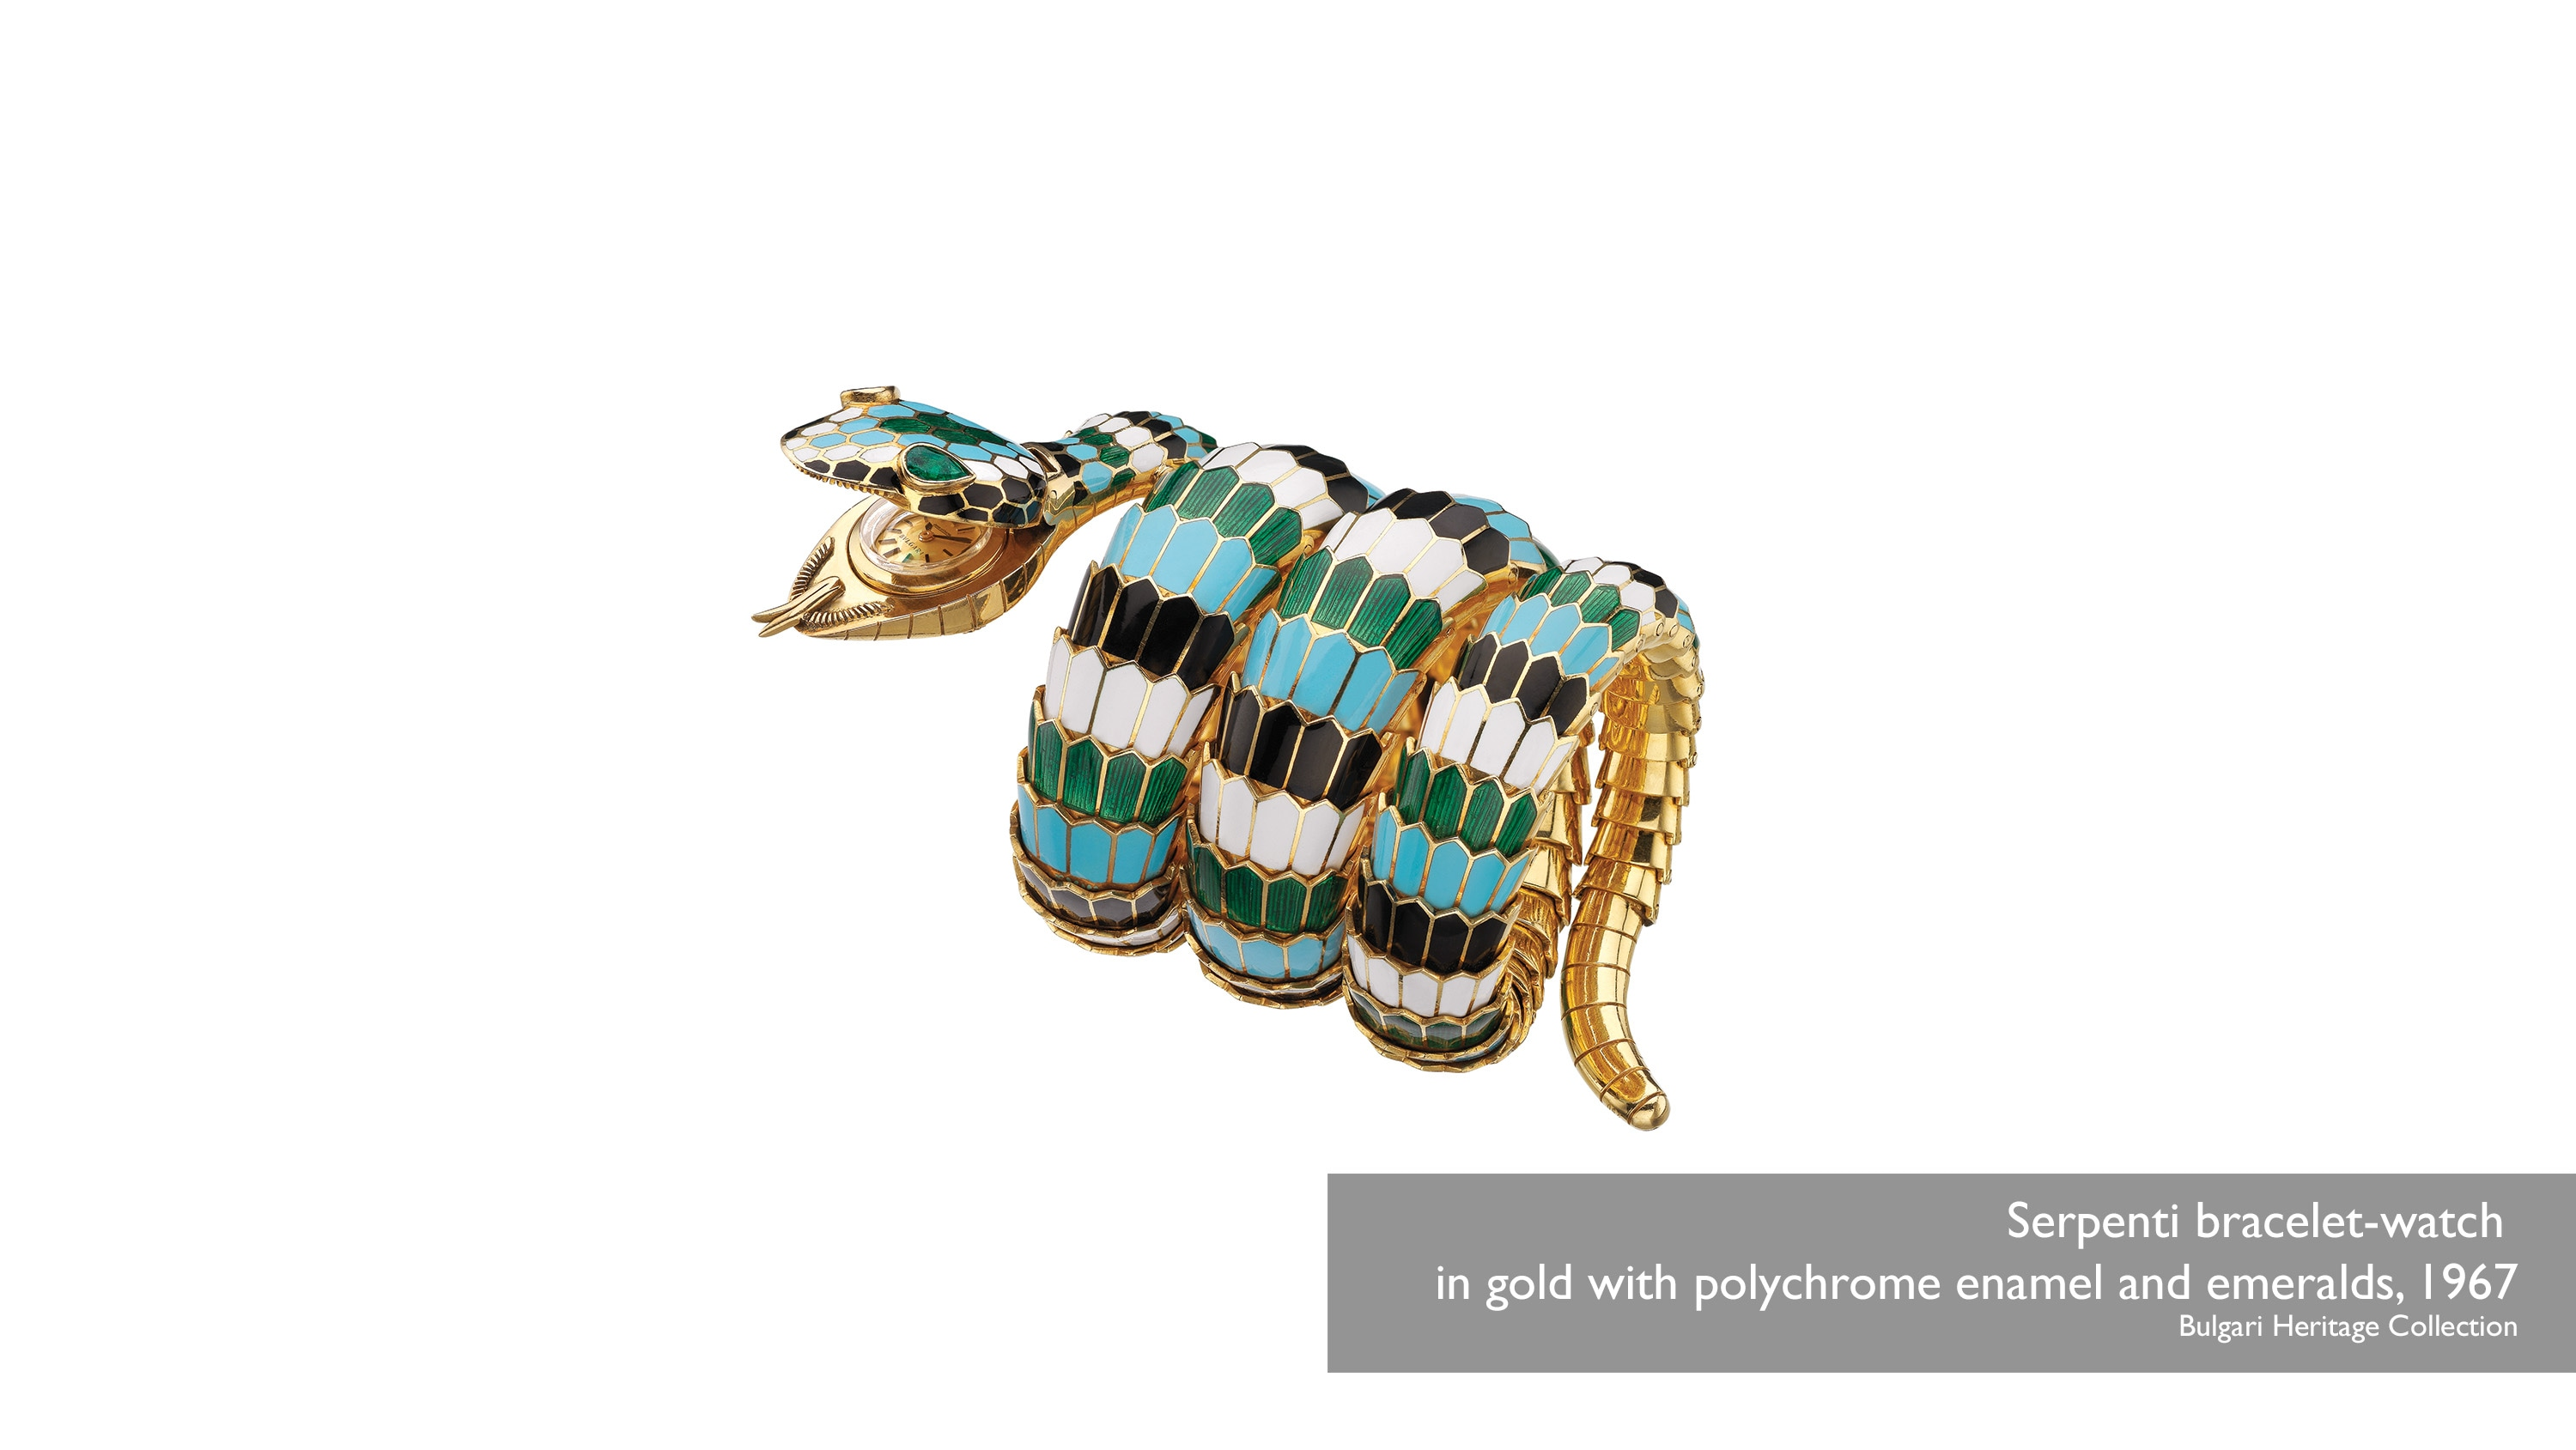 Serpenti bracelet-watch in gold with polychrome enamel and emeralds, 1967 Bulgari Heritage Collection